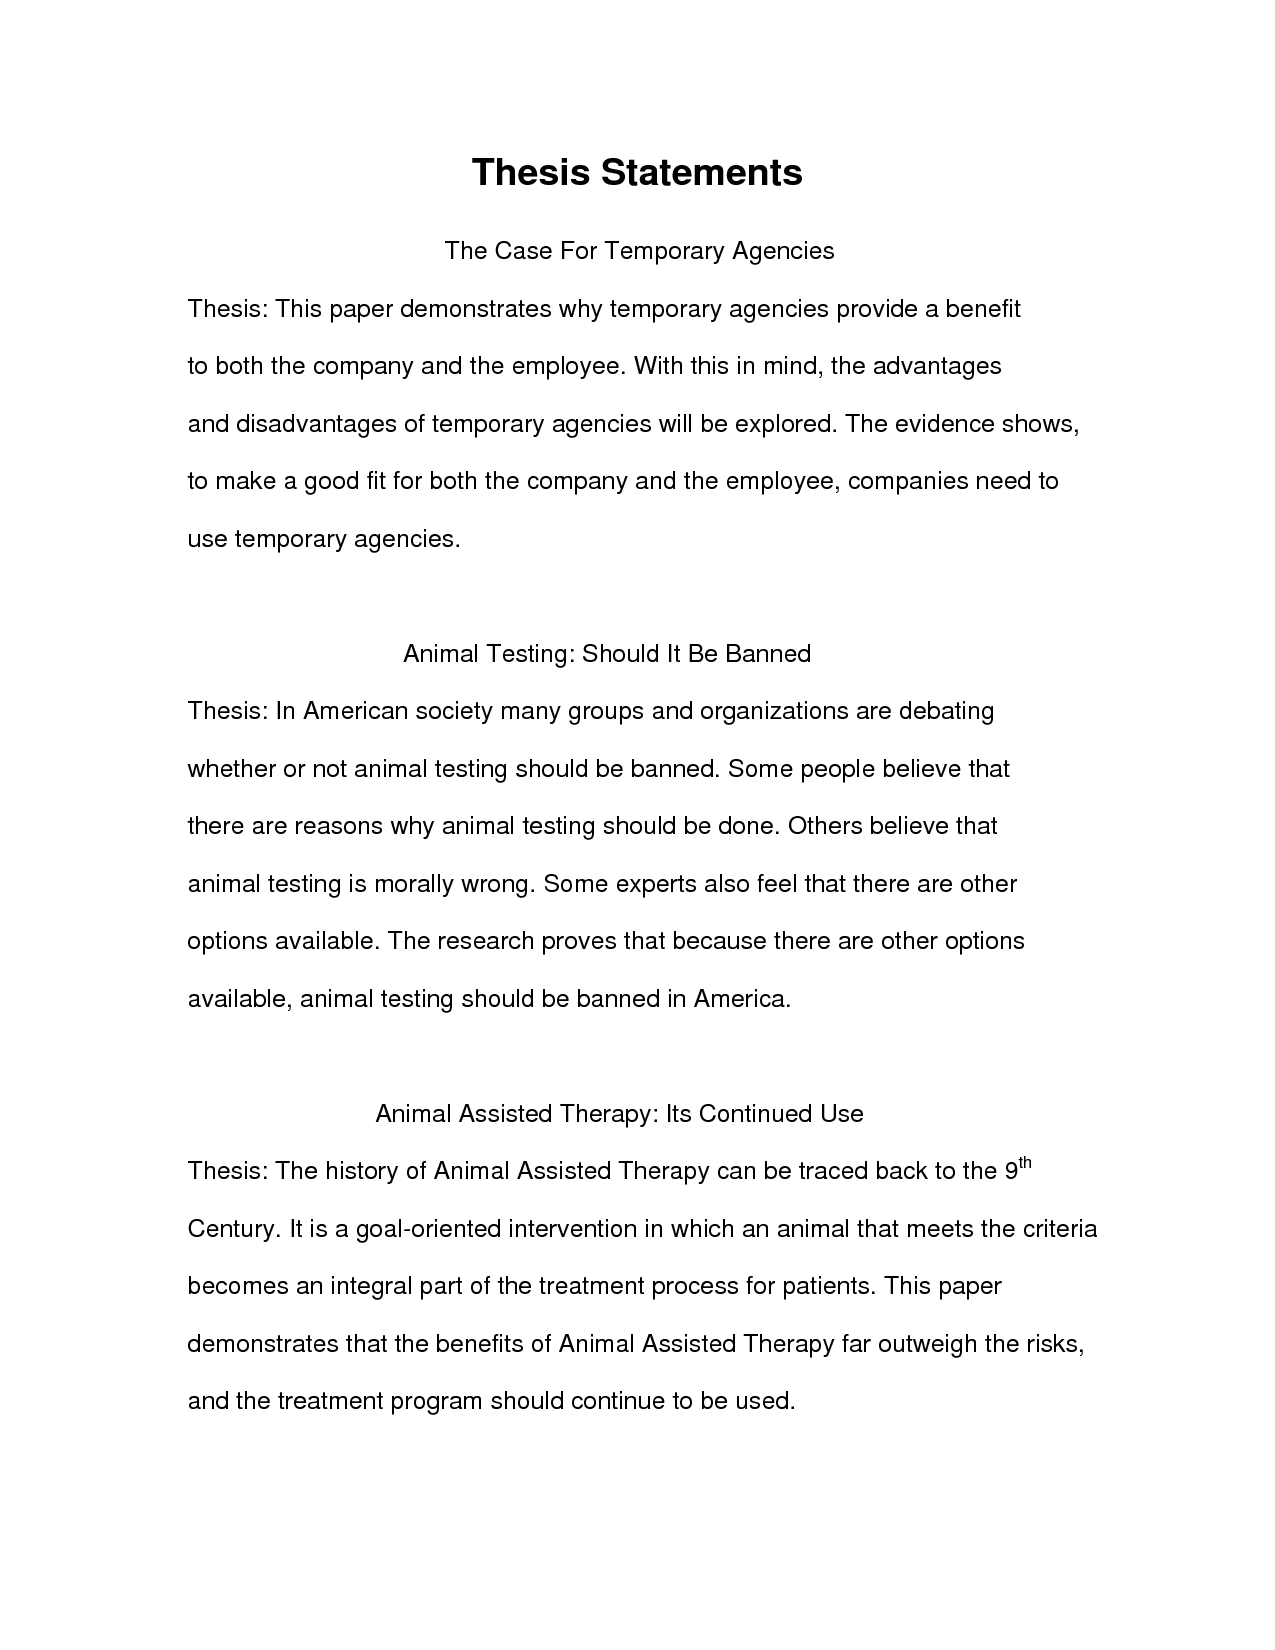 007 Argumentative Research Paper Thesis Examples Example Essay Statement Of Statements For Expository Essaysrative On Cosmetic Surgery Good Narrative Informative Best Full